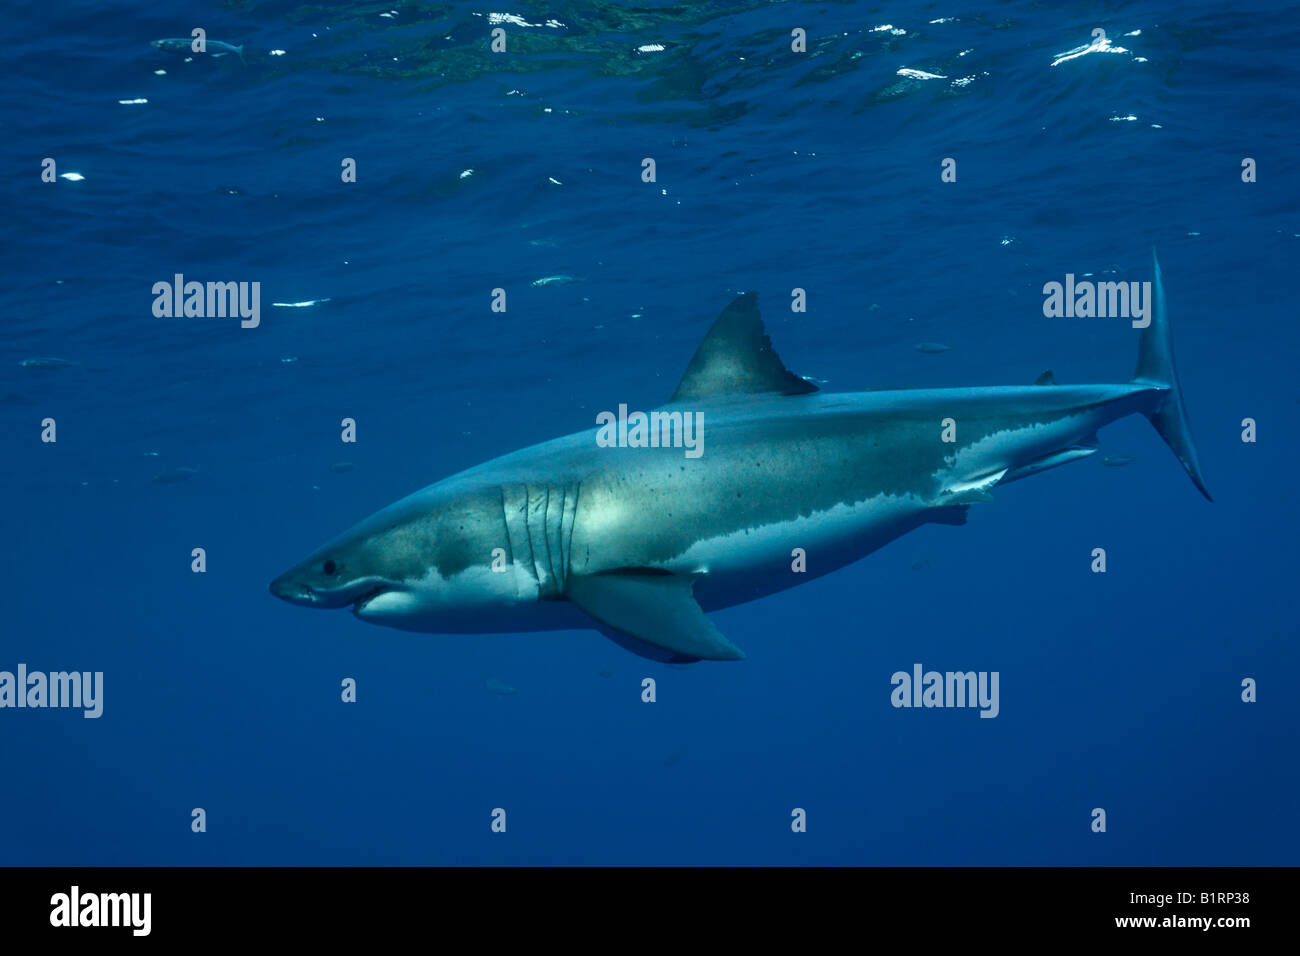 Great White Shark (Carcharodon carcharias), Guadalupe Island, Mexico, Pacific, North America - Stock Image